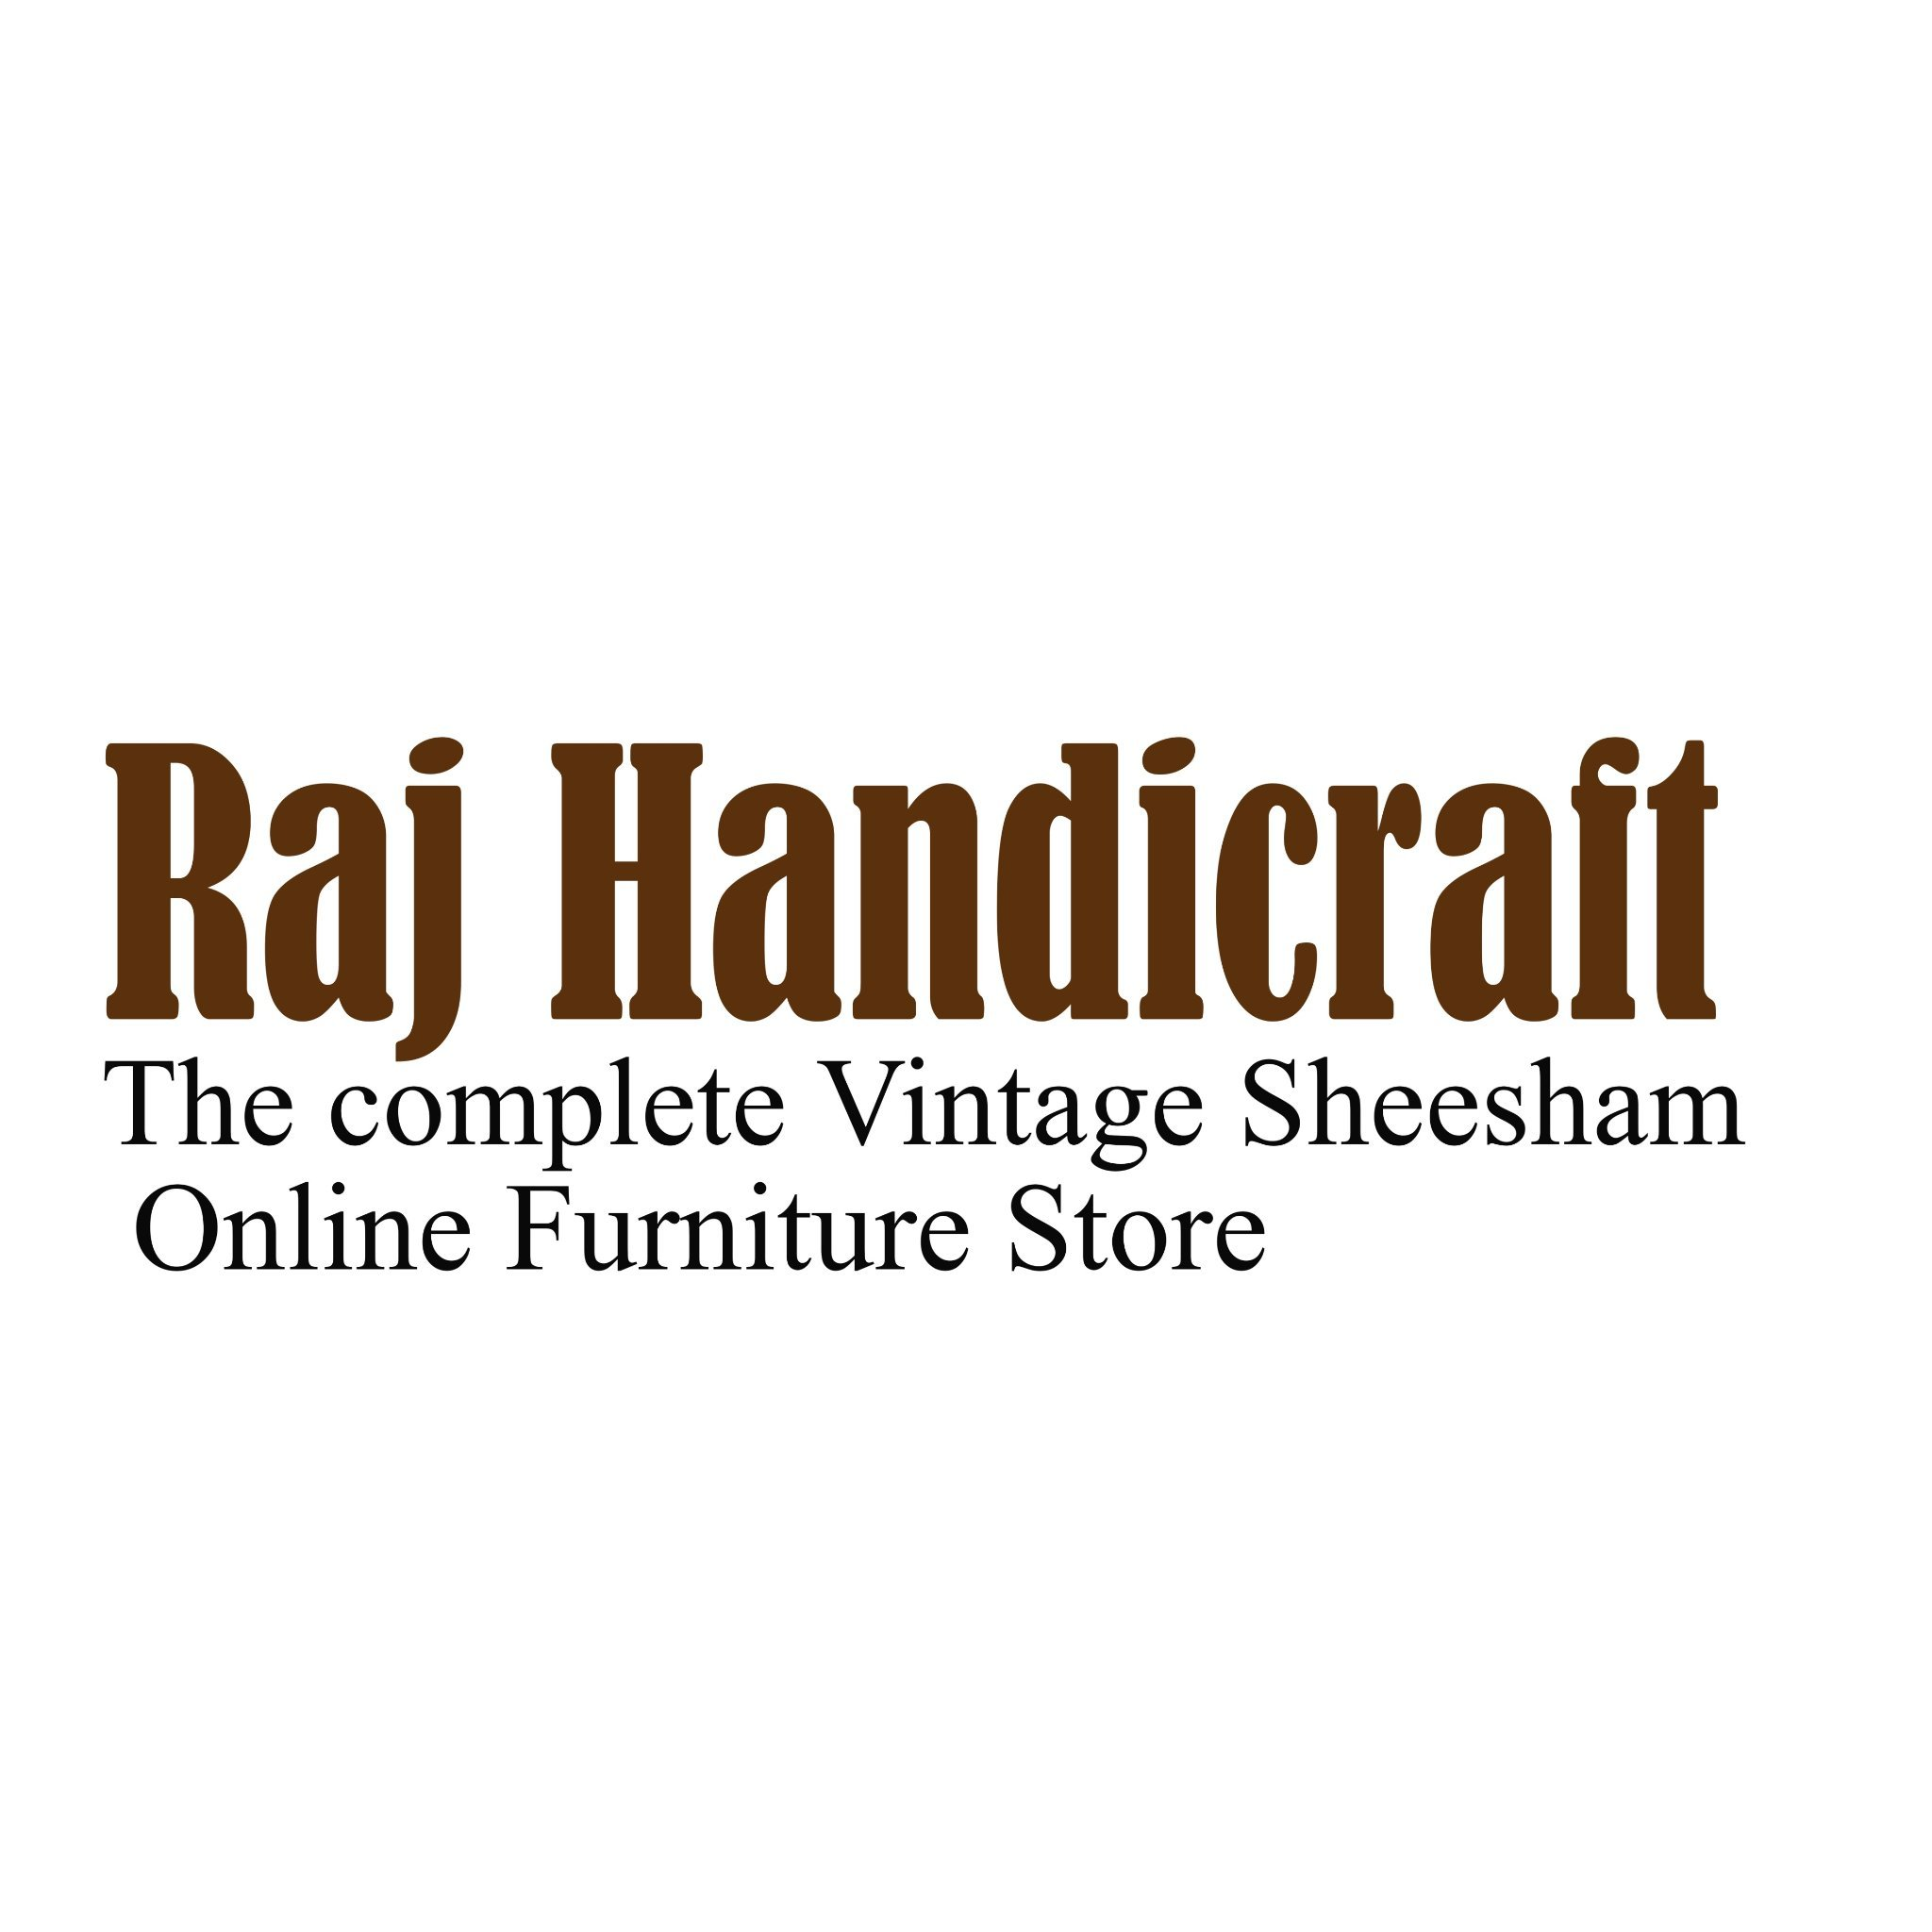 Rajhandicraft